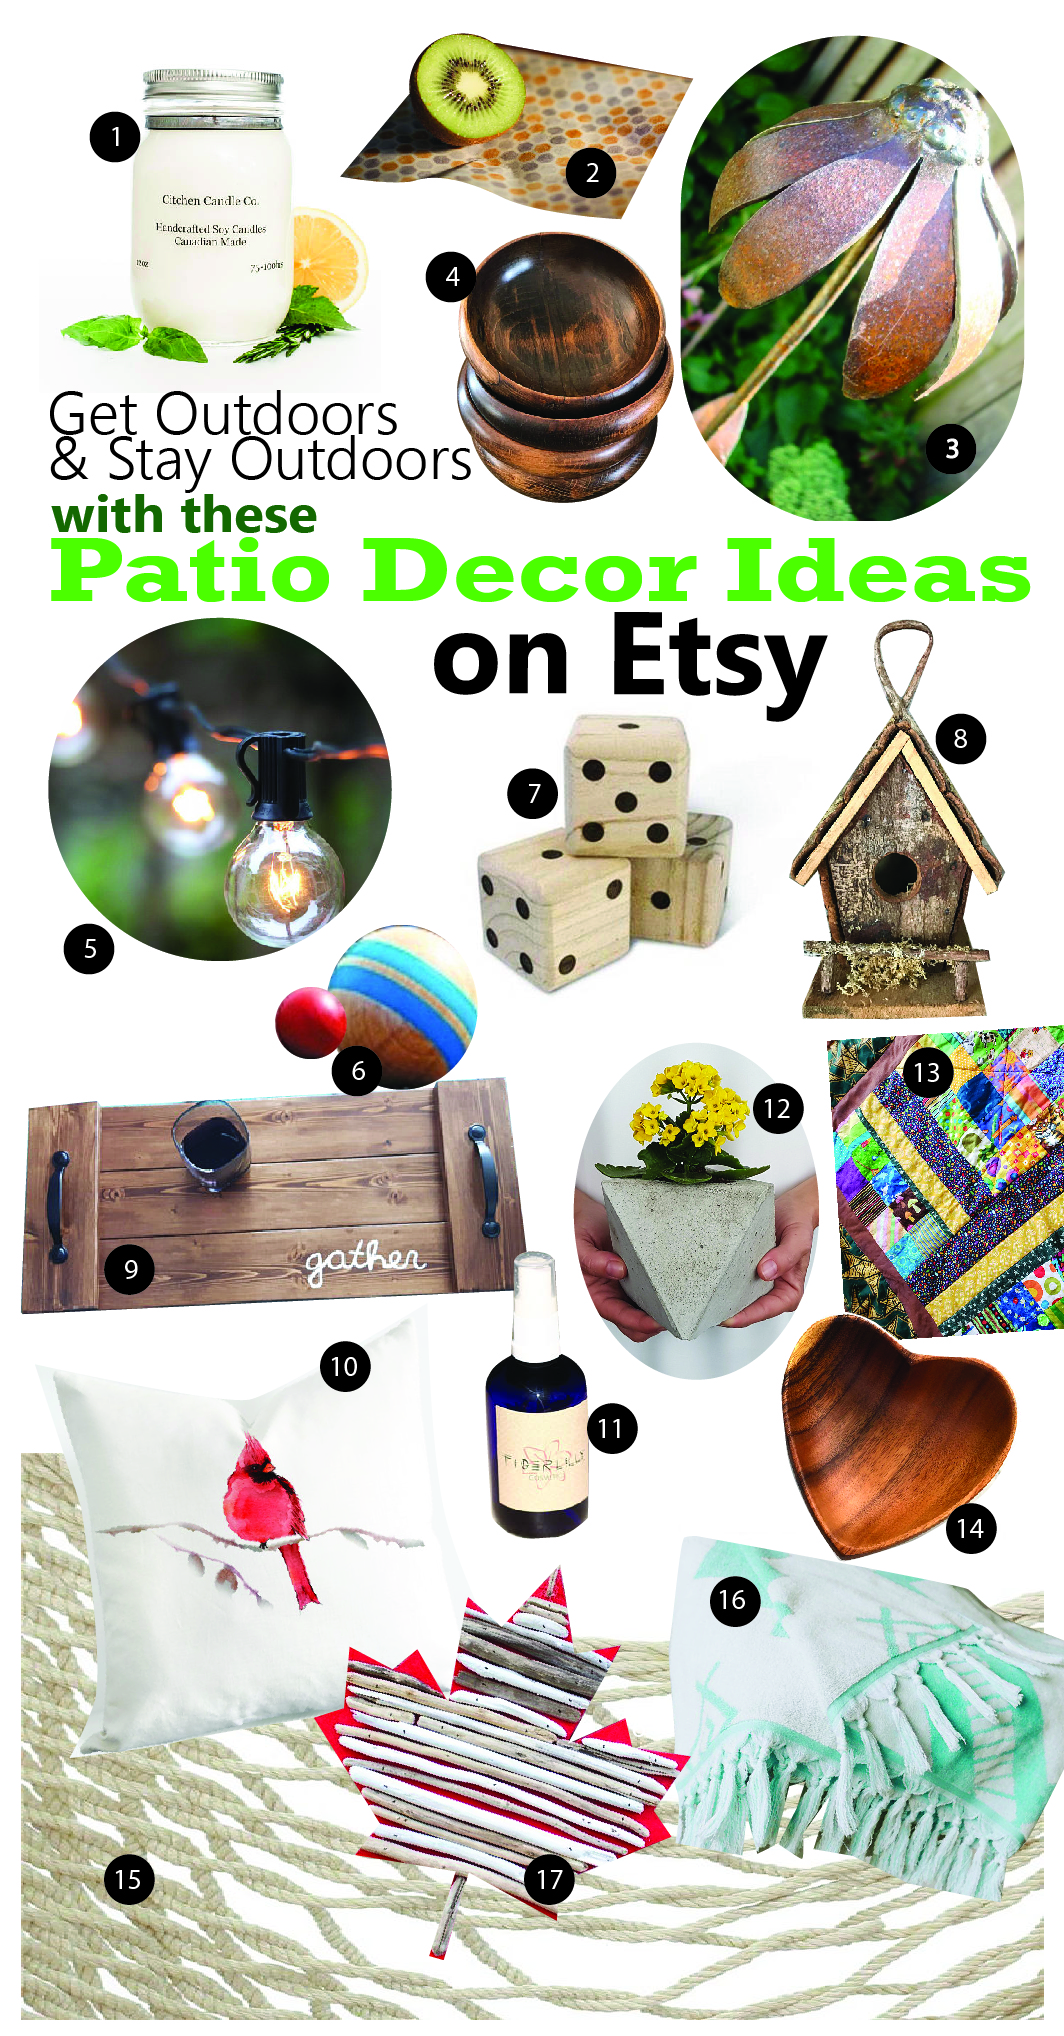 The Best Patio Decor Ideas On Etsy Free Shipping For Limited Time